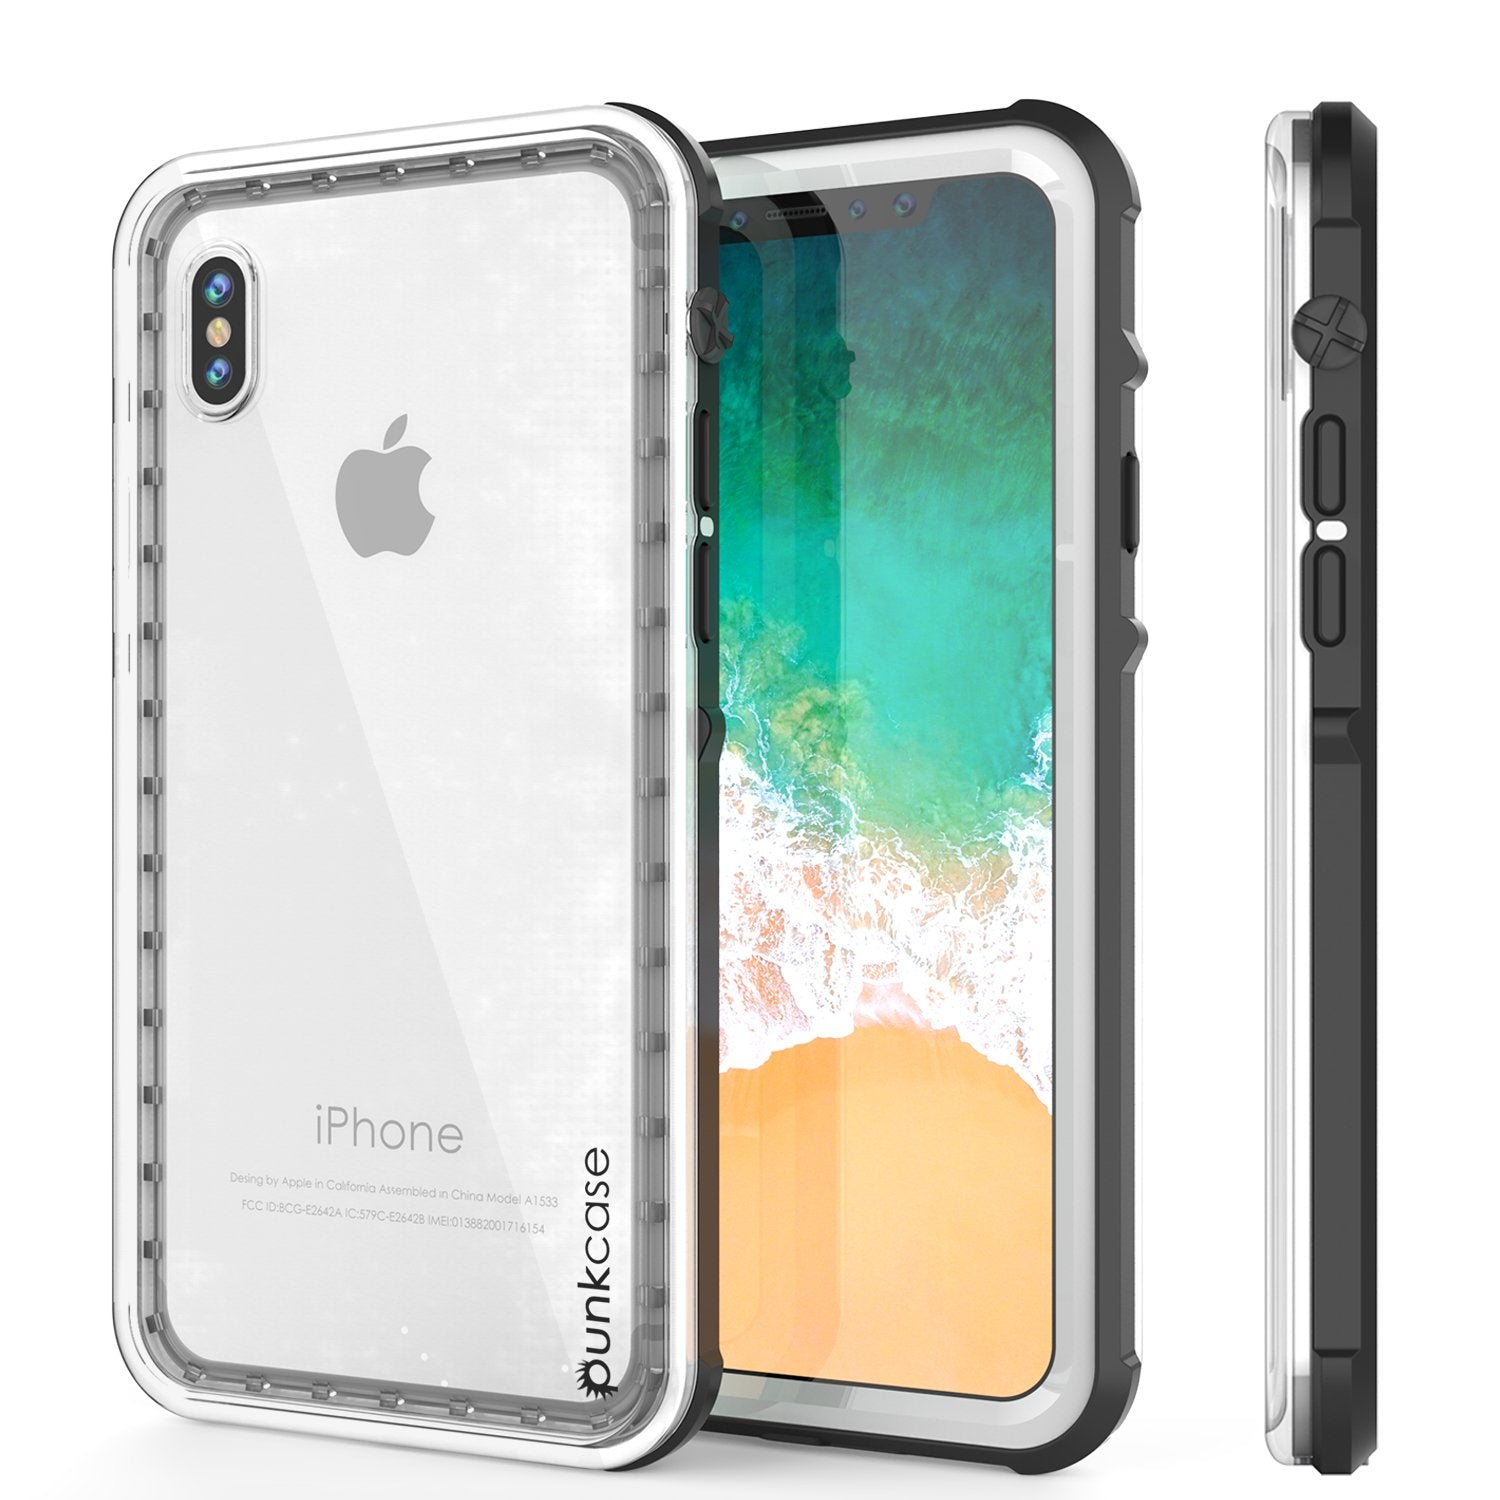 iPhone X Punkcase CRYSTAL SERIES Cover W/Screen Protector, [white]